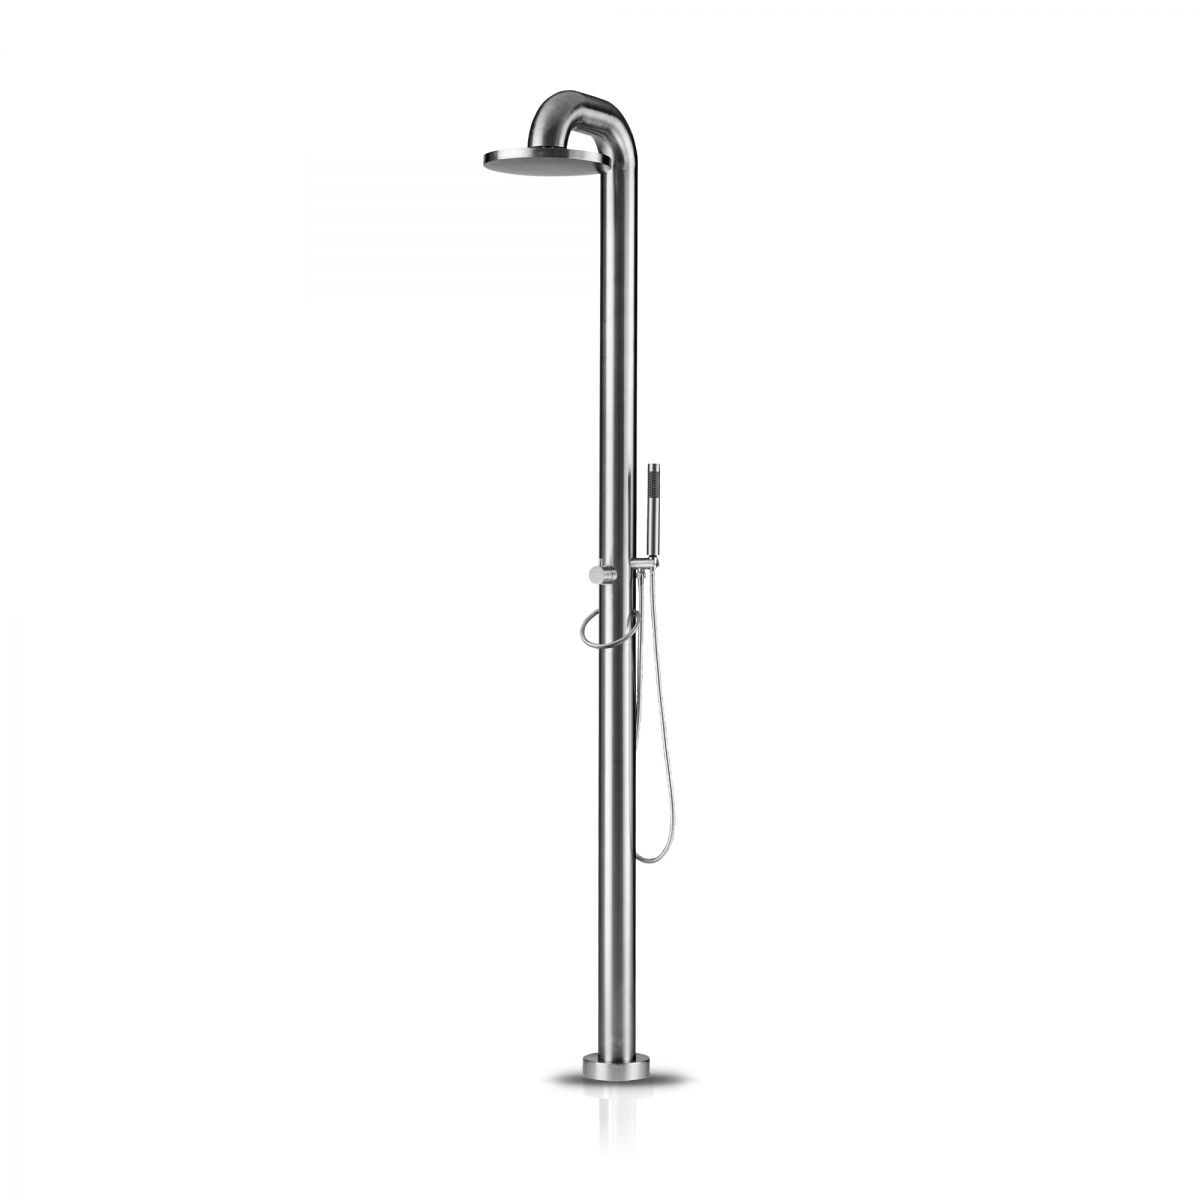 Jee-O Fatline Shower Stands